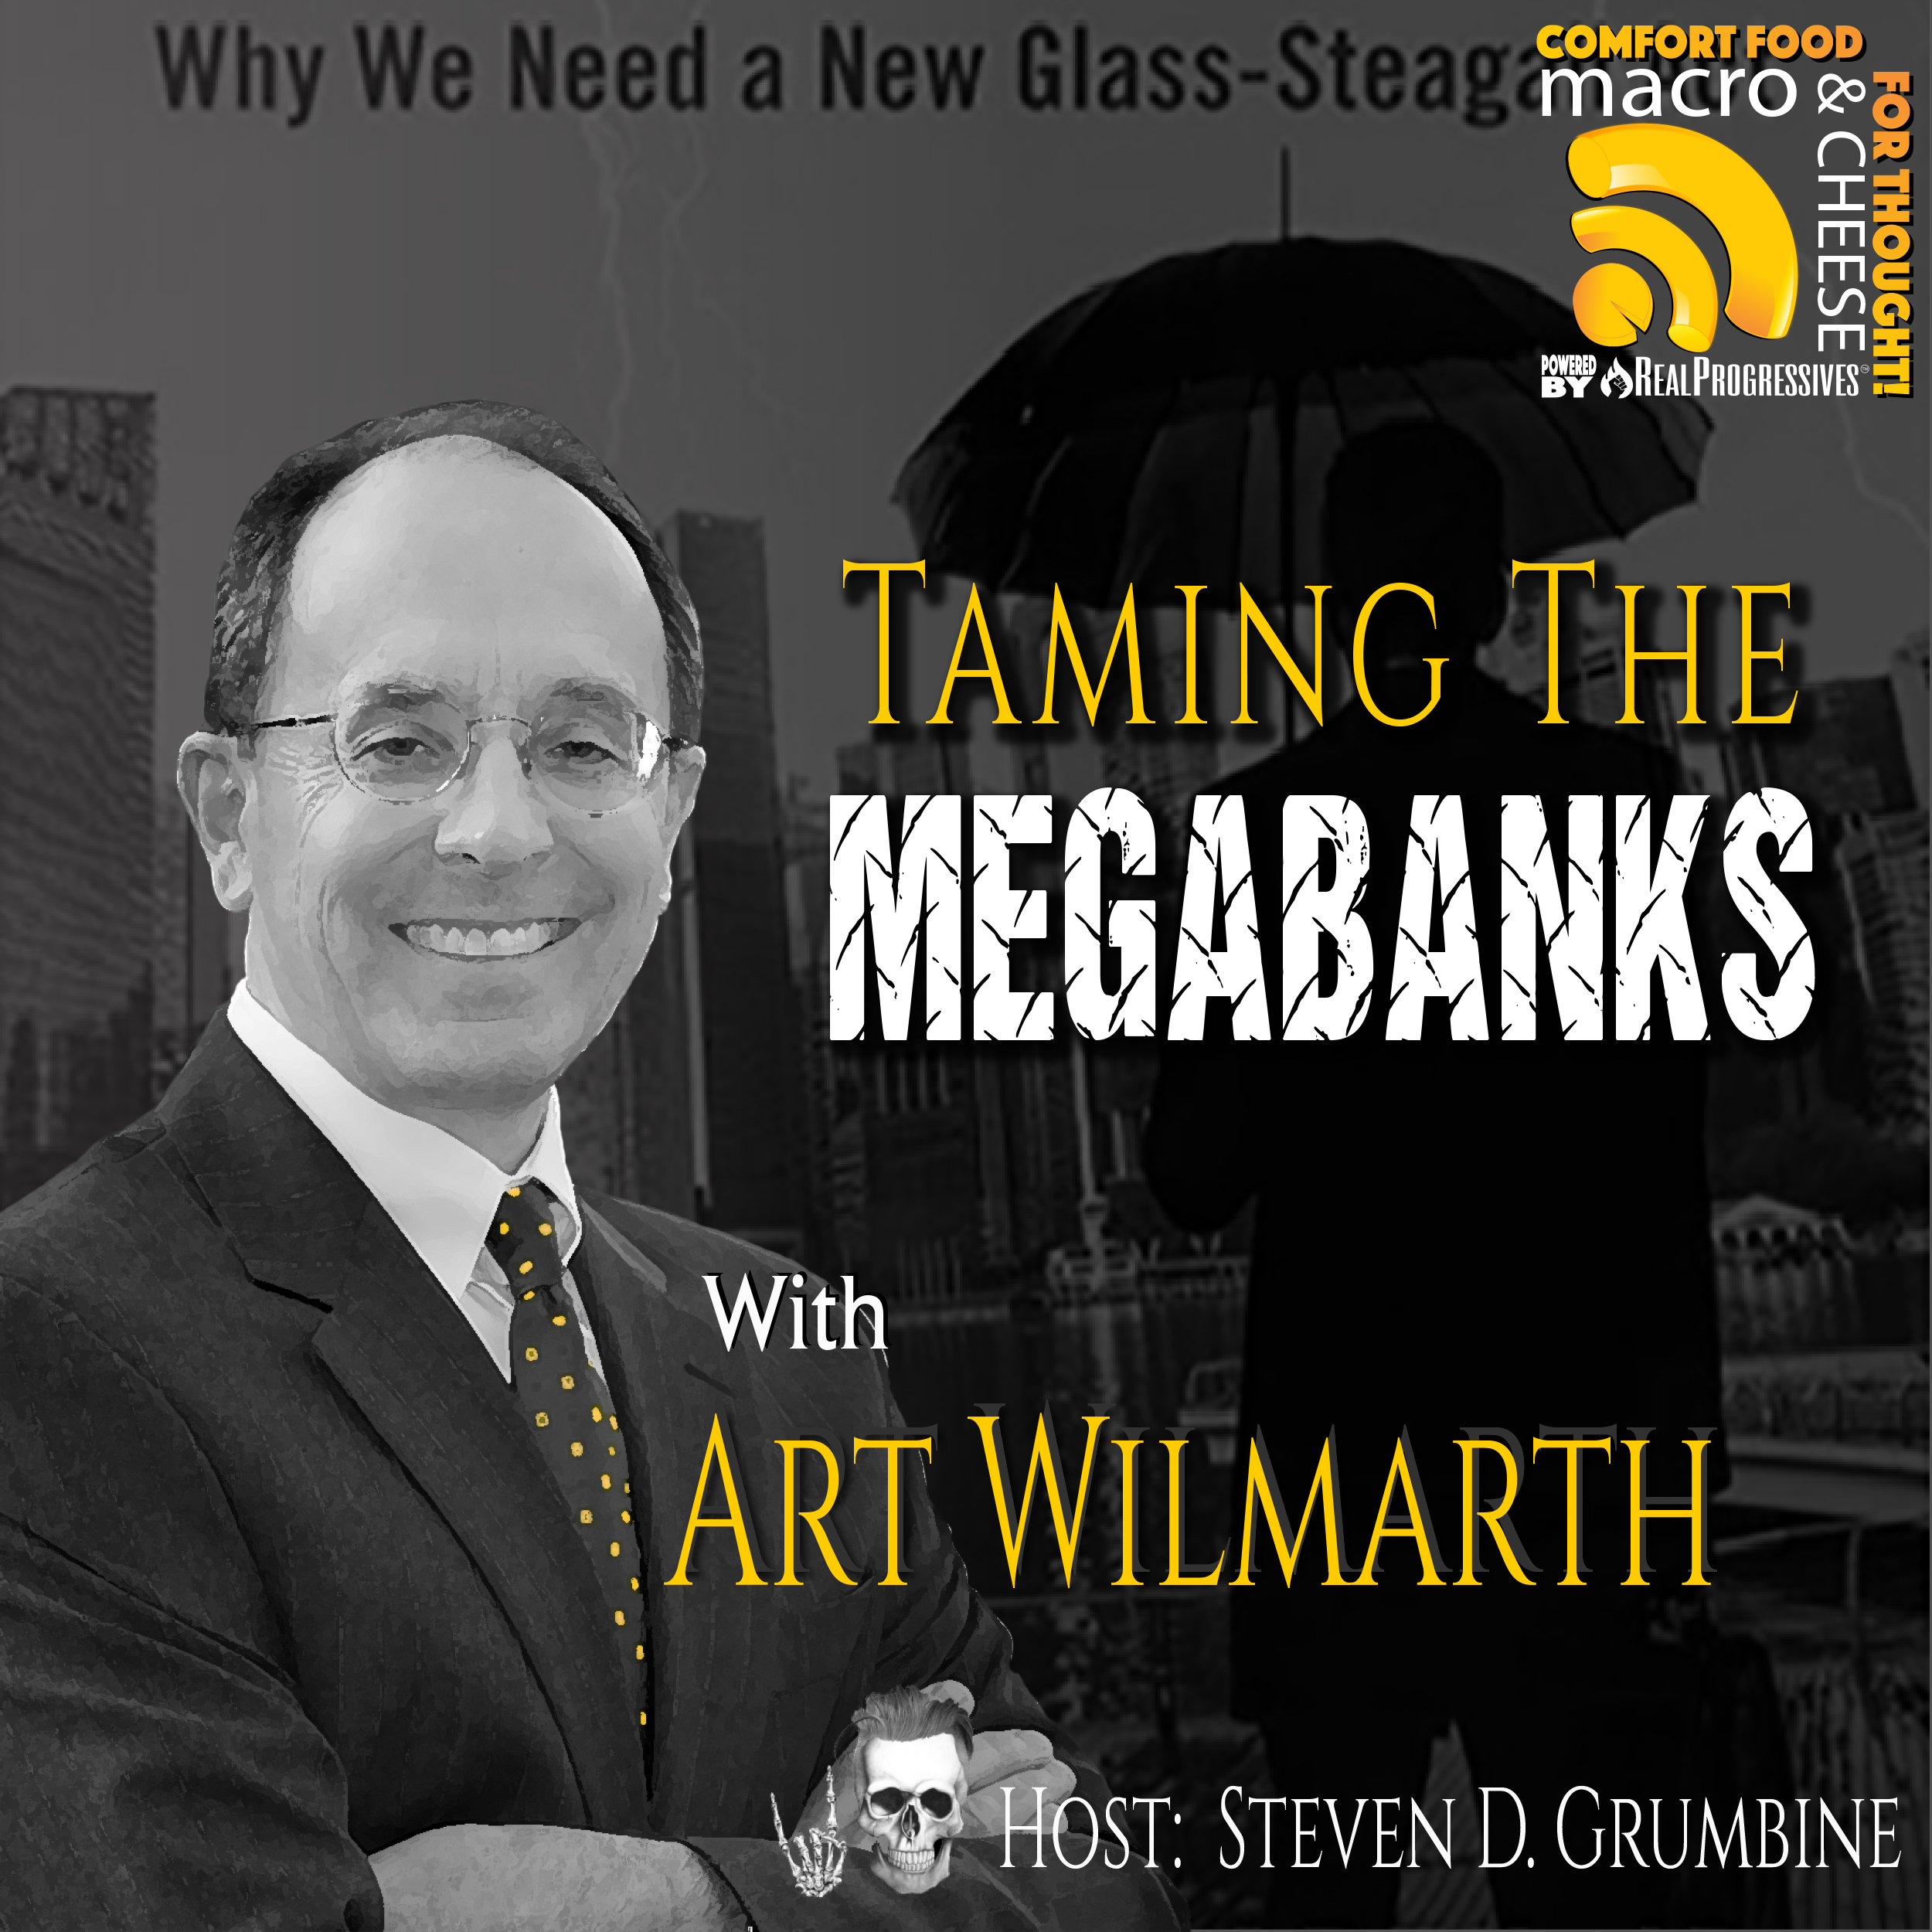 Taming the Megabanks with Art Wilmarth